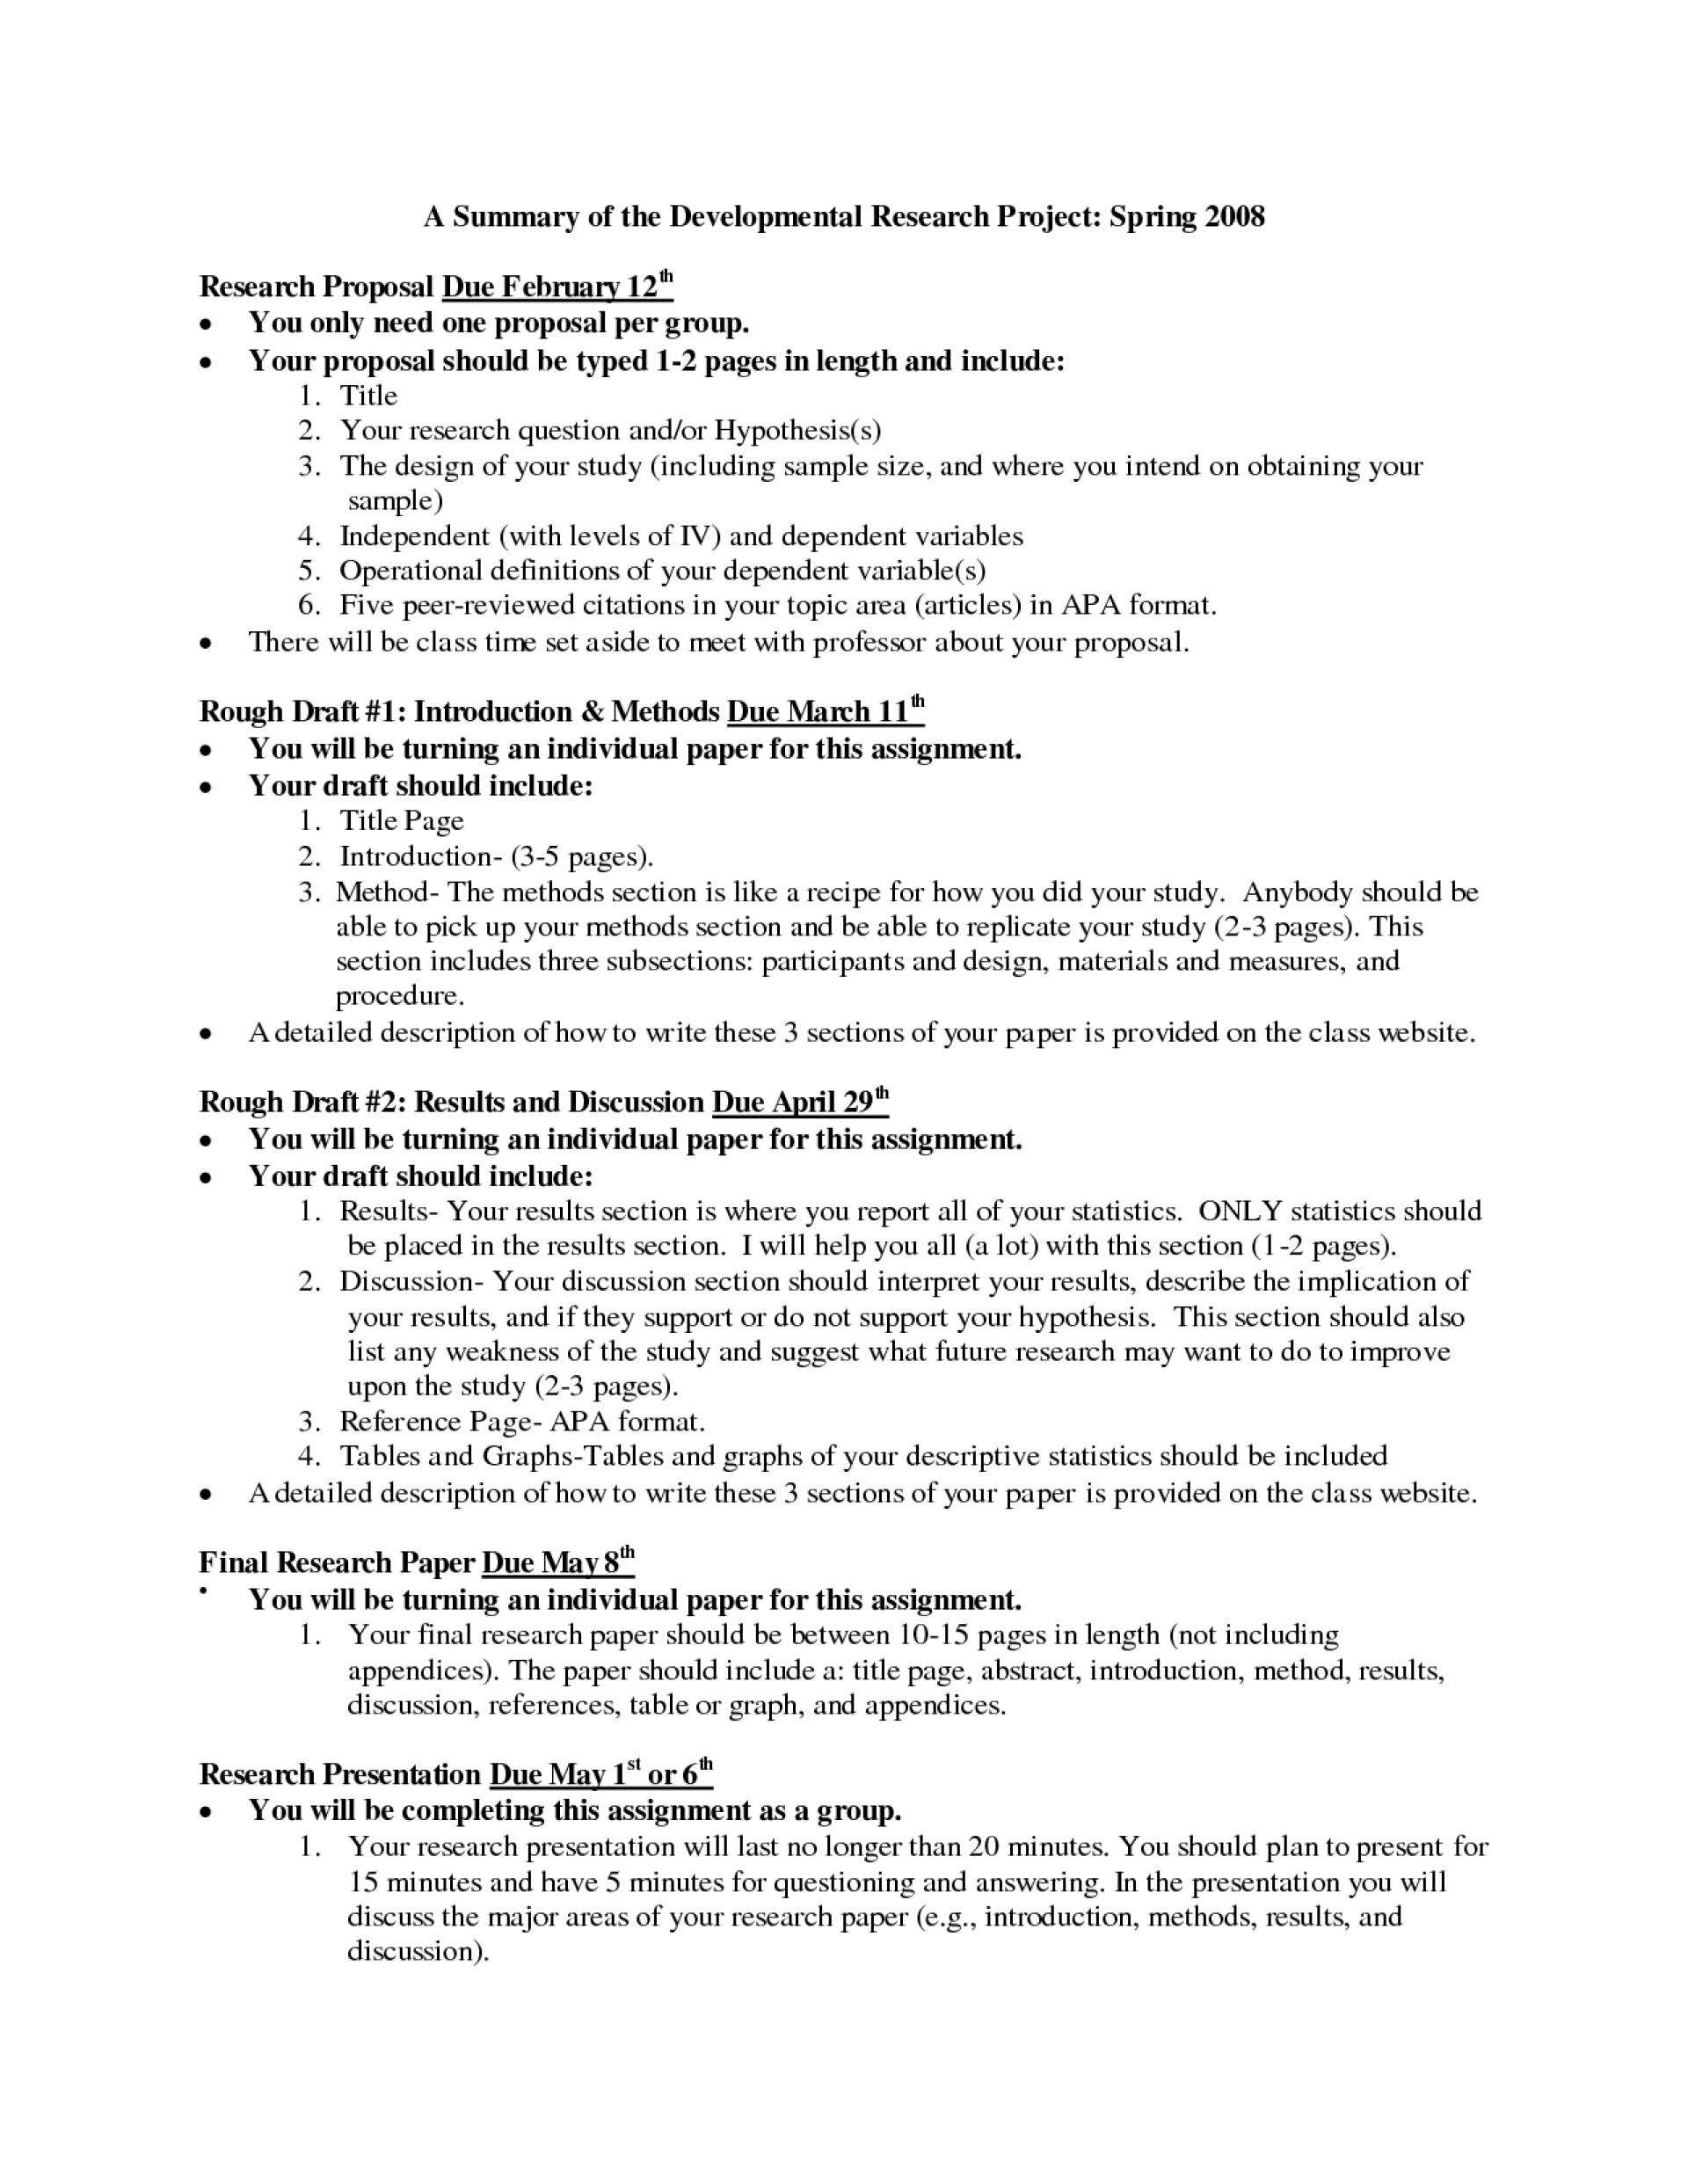 012 Good Research Paper Topic Psychology Undergraduate Resume Unique Sample Singular Topics History Reddit Argumentative About Sports 1920